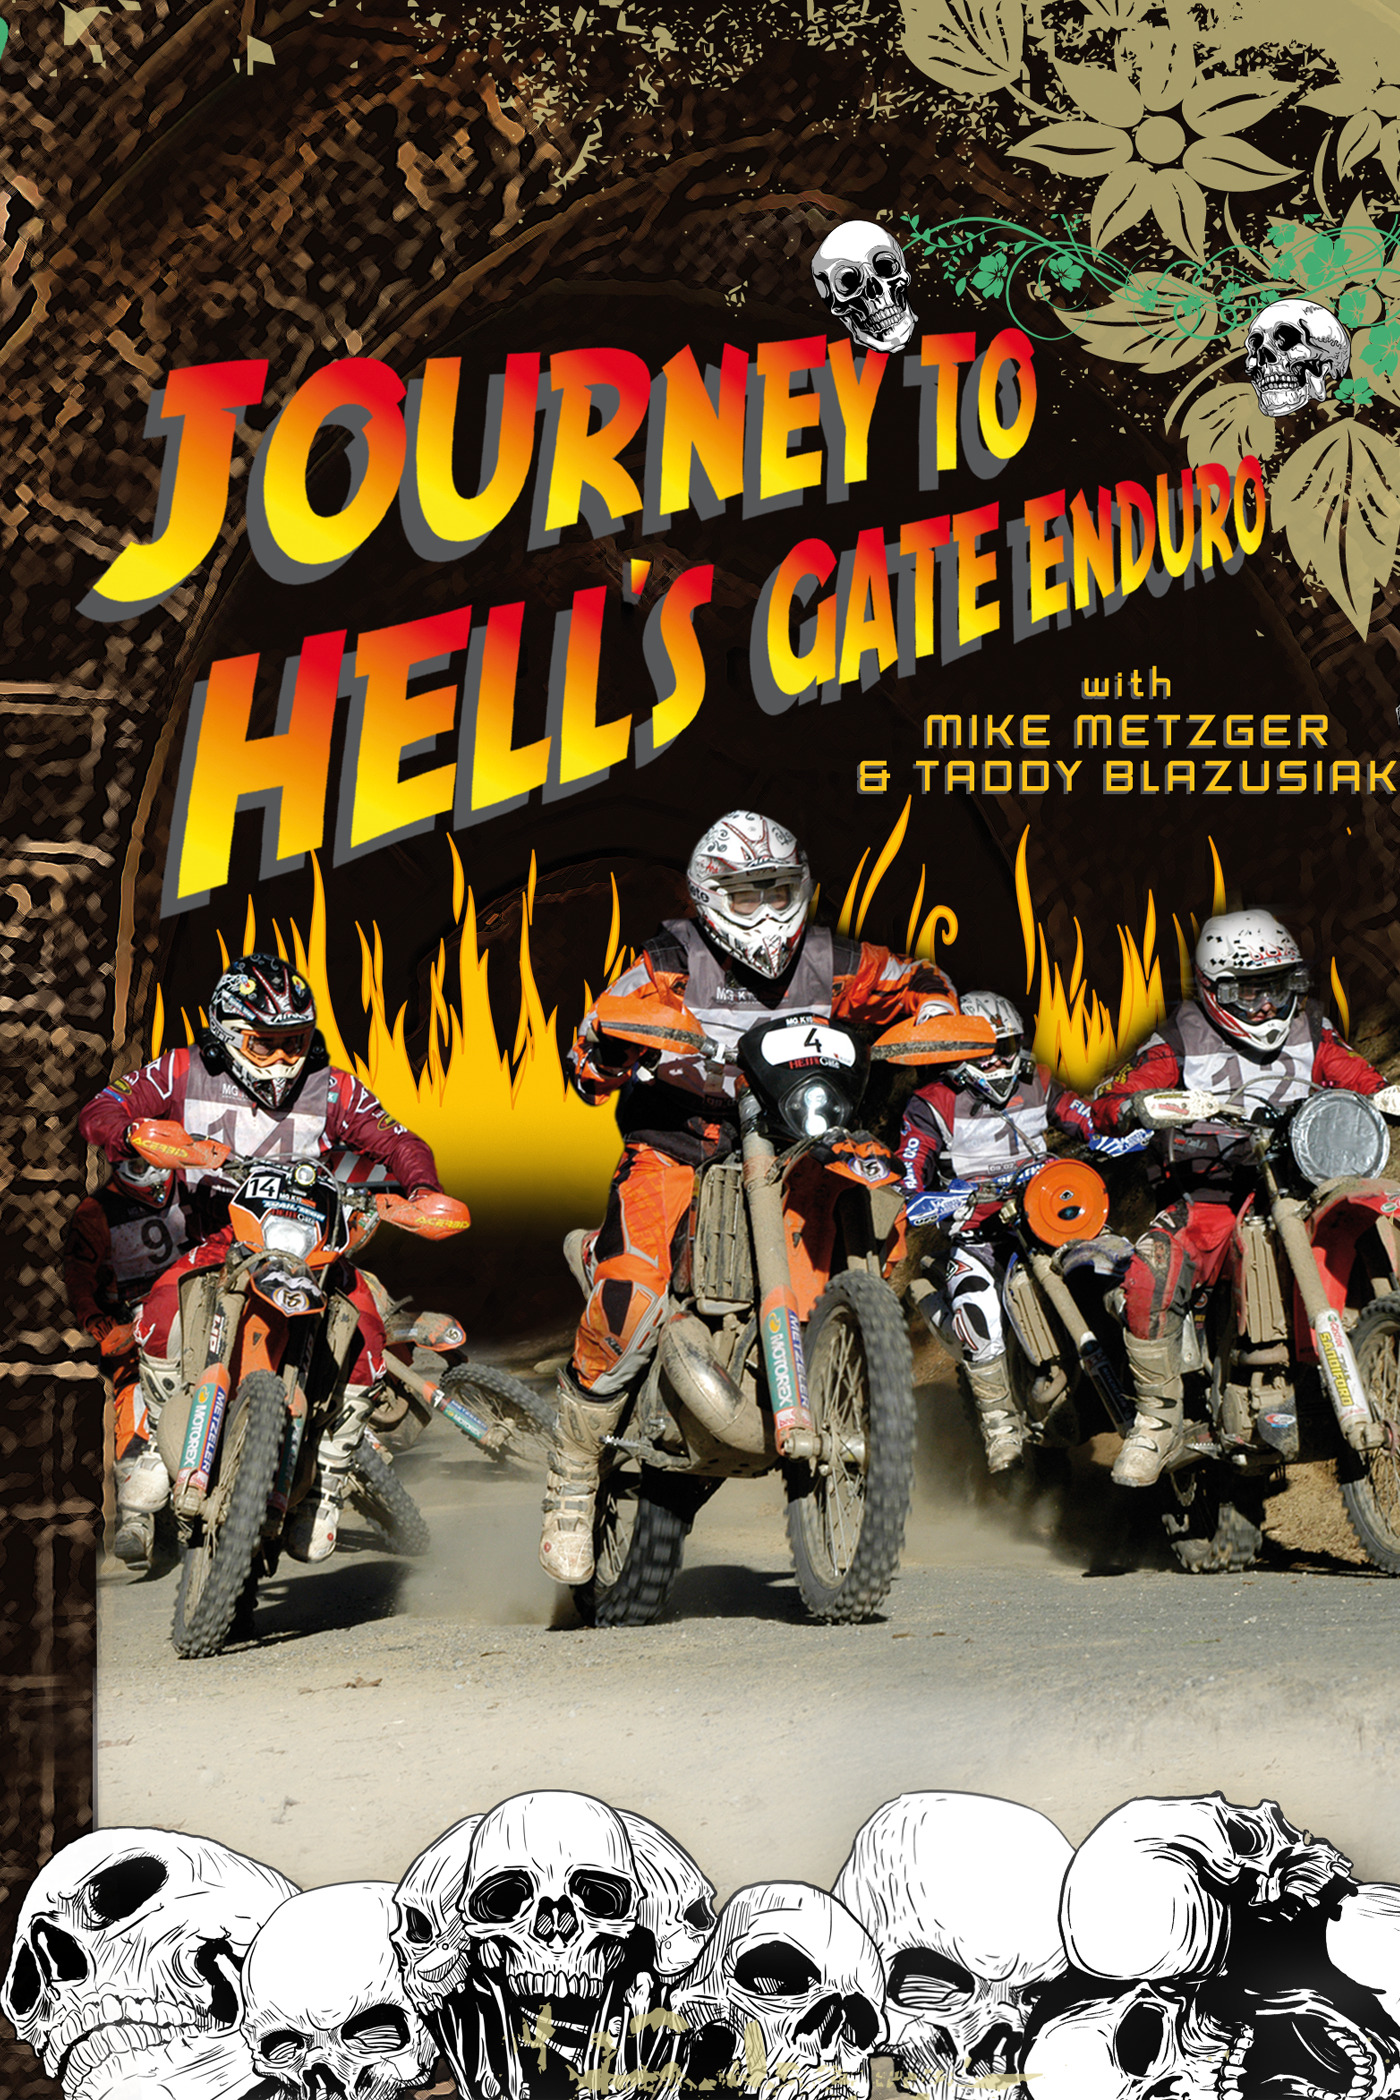 Journey to Hell's Gate Enduro